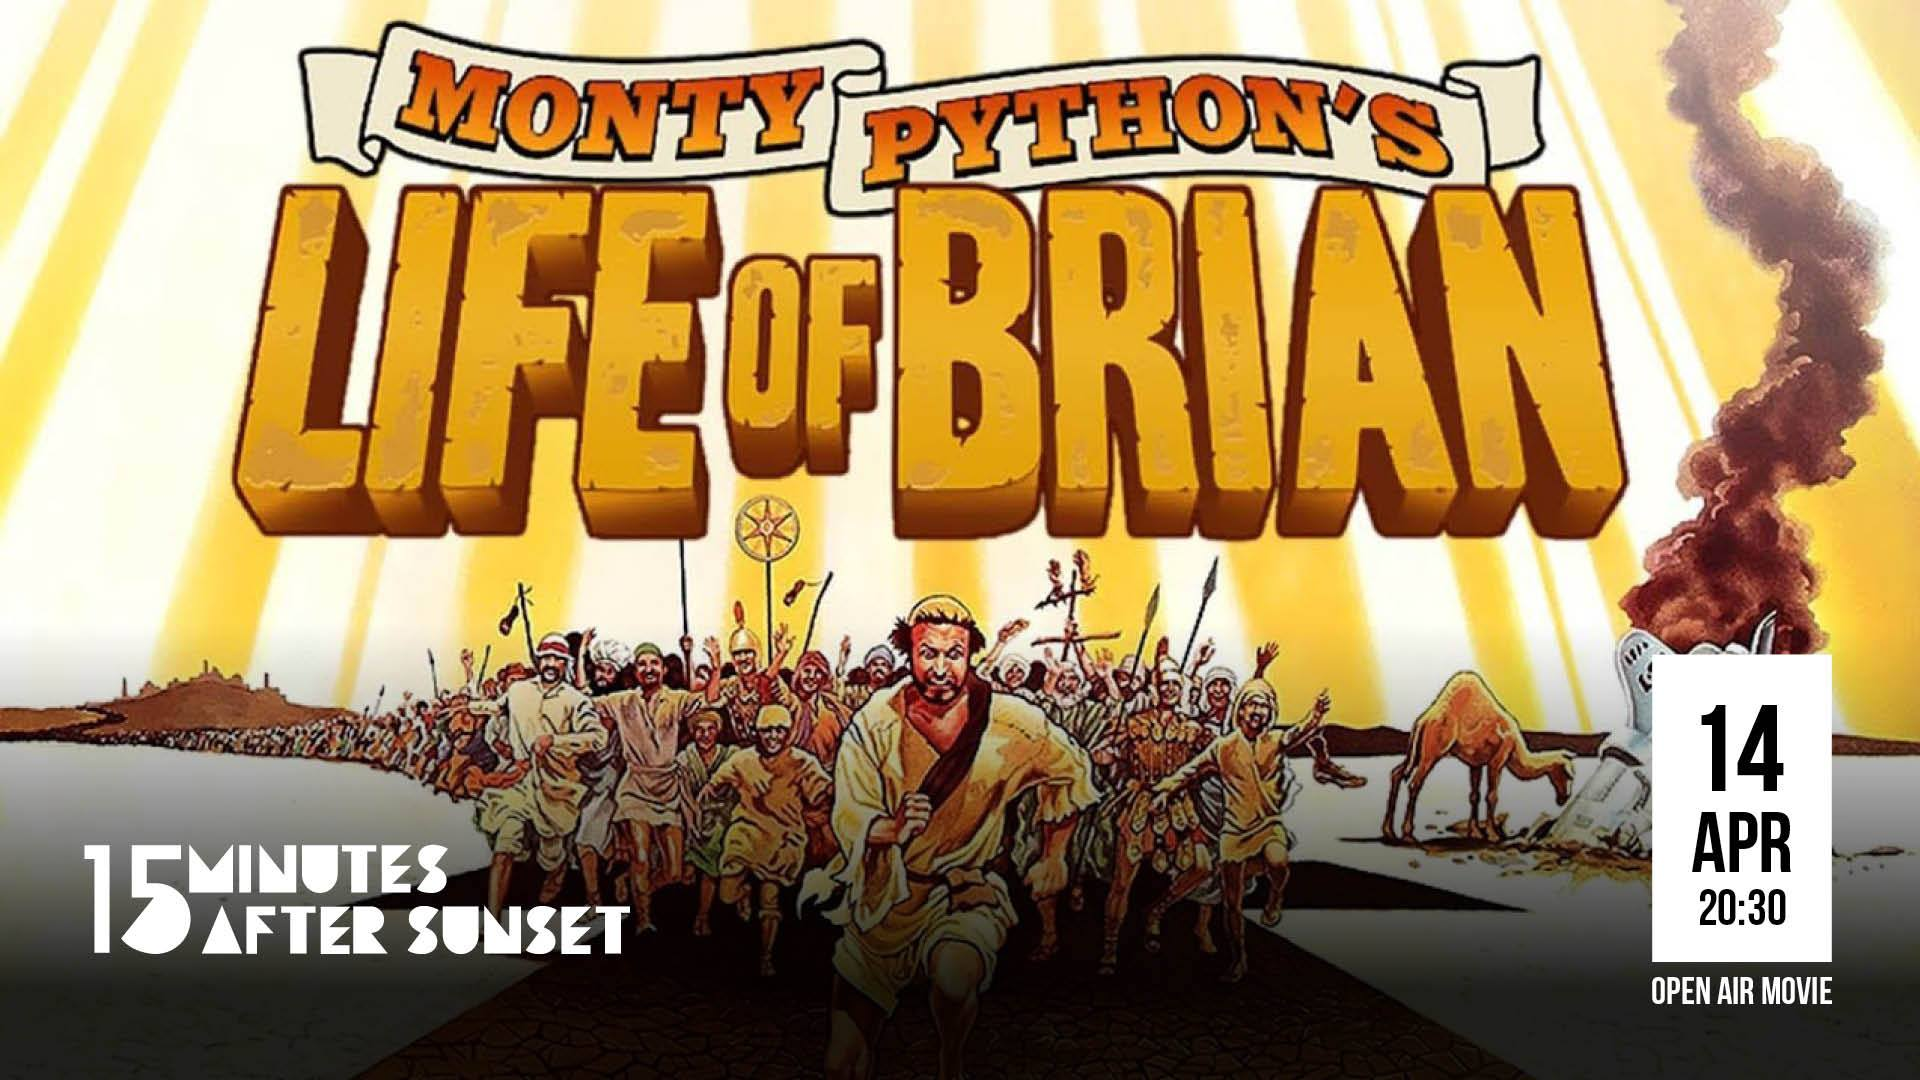 15 minutes after sunset - Life of Brian